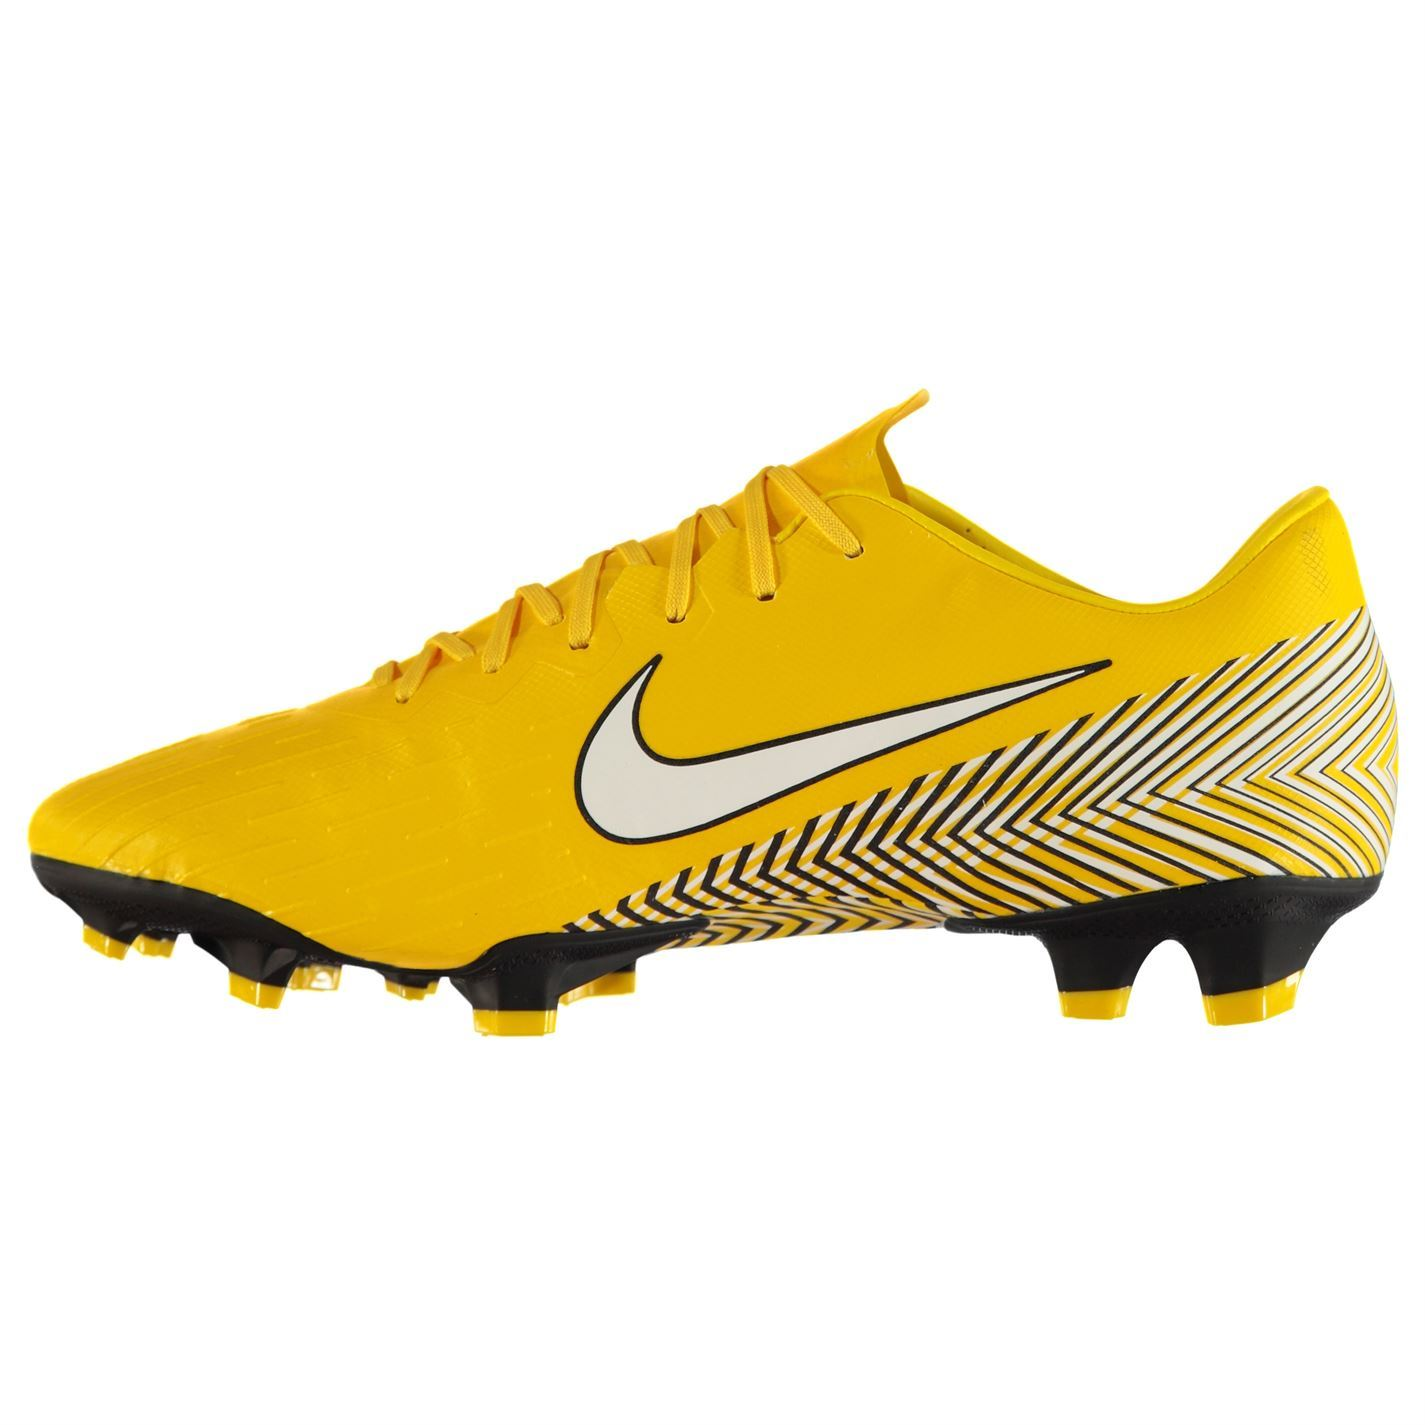 low priced b3b17 2cbbc Nike Mercurial Vapor Pro Neymar Firm Ground Football Boots Mens Yel Soccer  Cleat